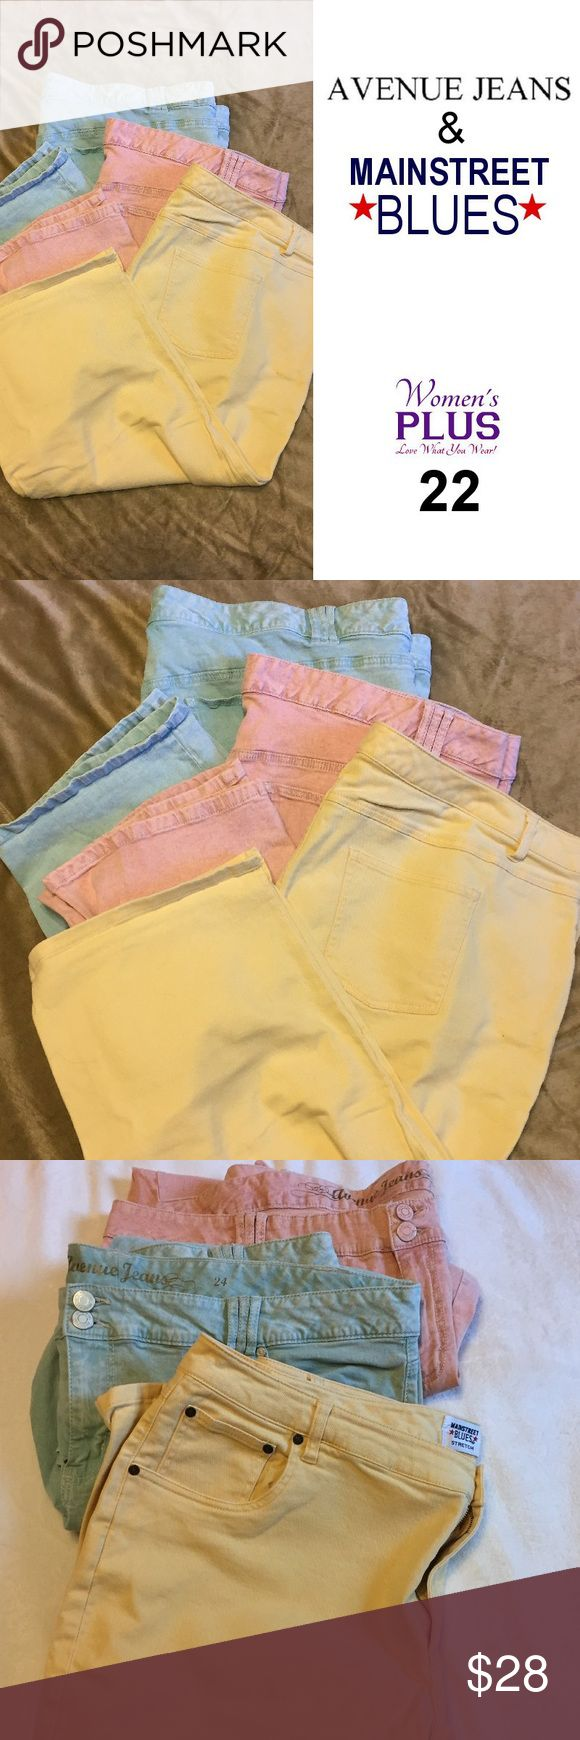 """Capris in Mint, Pink & Yellow (3 pr.) PLUS 24W This is a bundle of all 3 Capris in excellent condition as shown. Women's Size 24. Fun pastel colors of Pink, Mint & Yellow.  Mint and Pink capris are Avenue Jeans. Yellow are Mainstreet Blues.  Approx. Sizes: Mint – Inseam: 20"""", Waist:24.25"""" Pink  – Inseam: 20"""", Waist:23.5"""" Yellow – Inseam: 19"""", Waist:22.5"""" Pants Capris"""